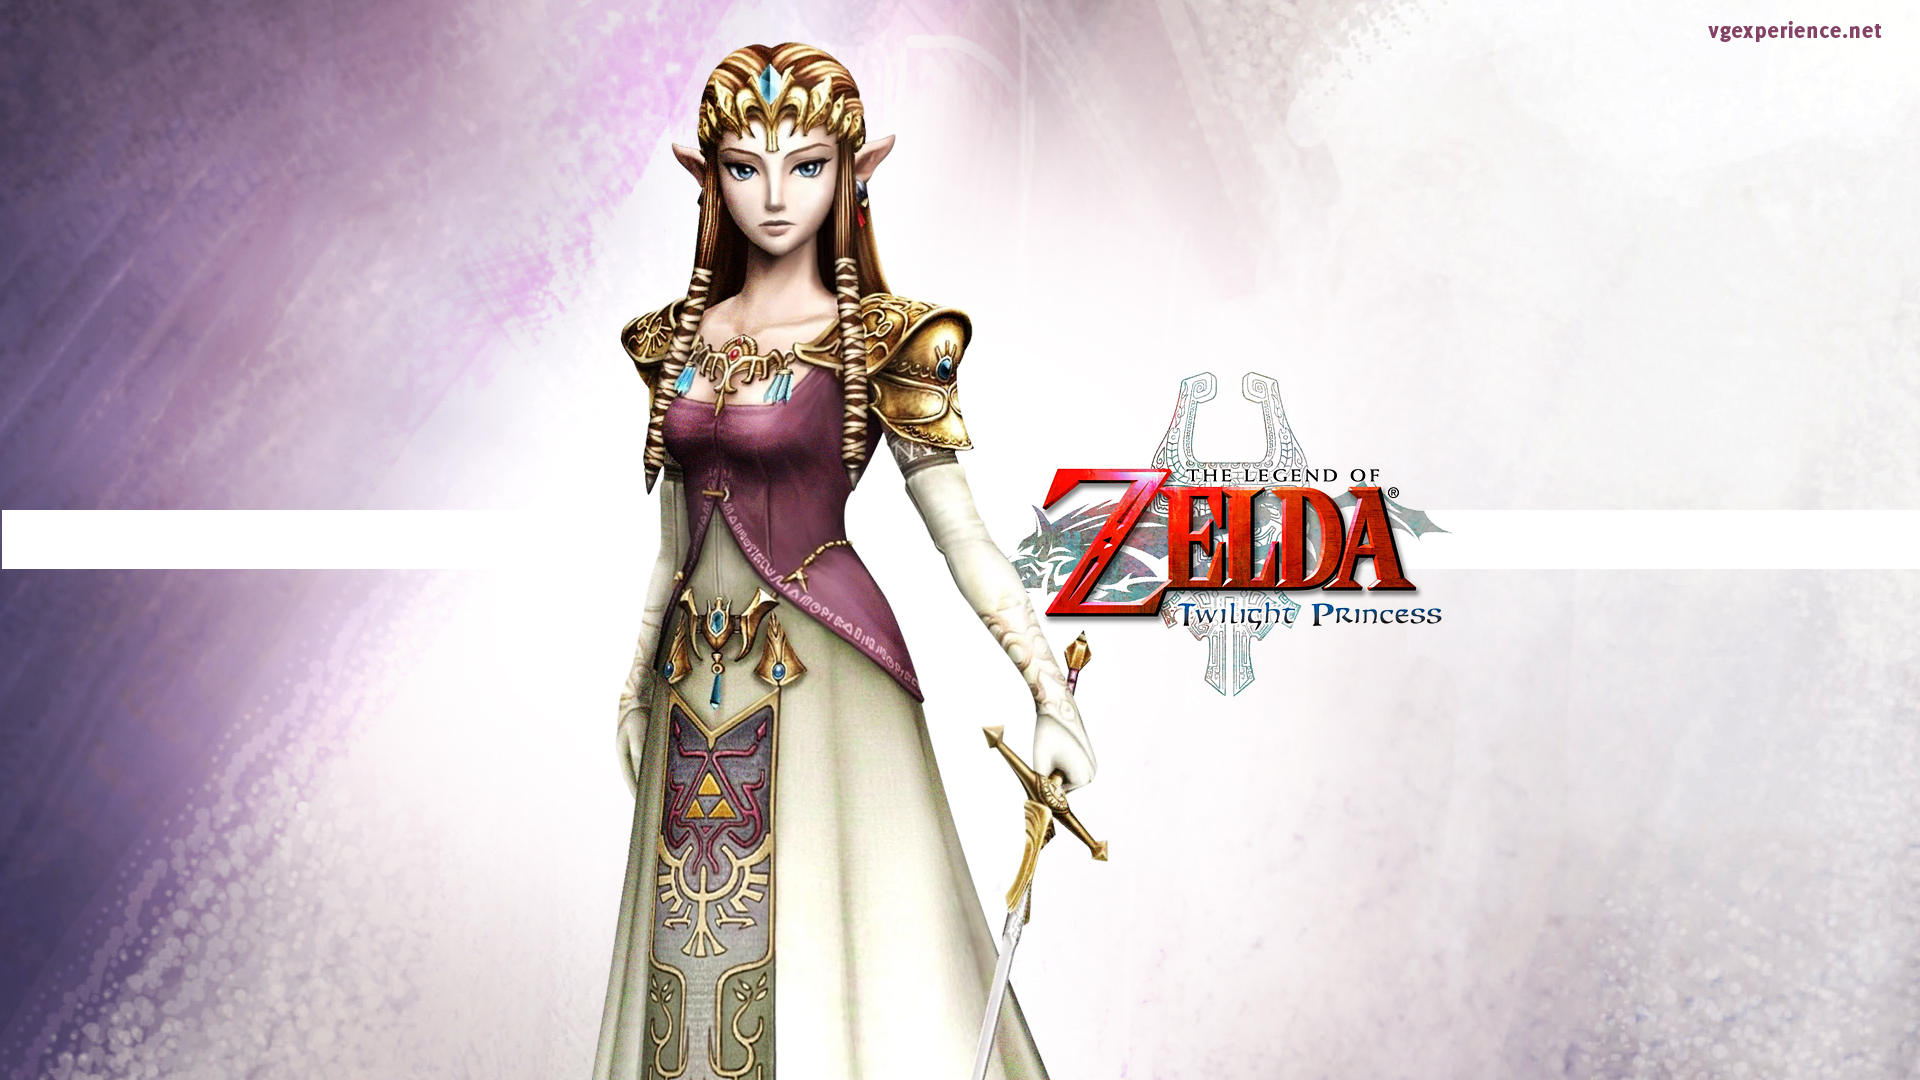 Princess Zelda   wallpaper 1920x1080